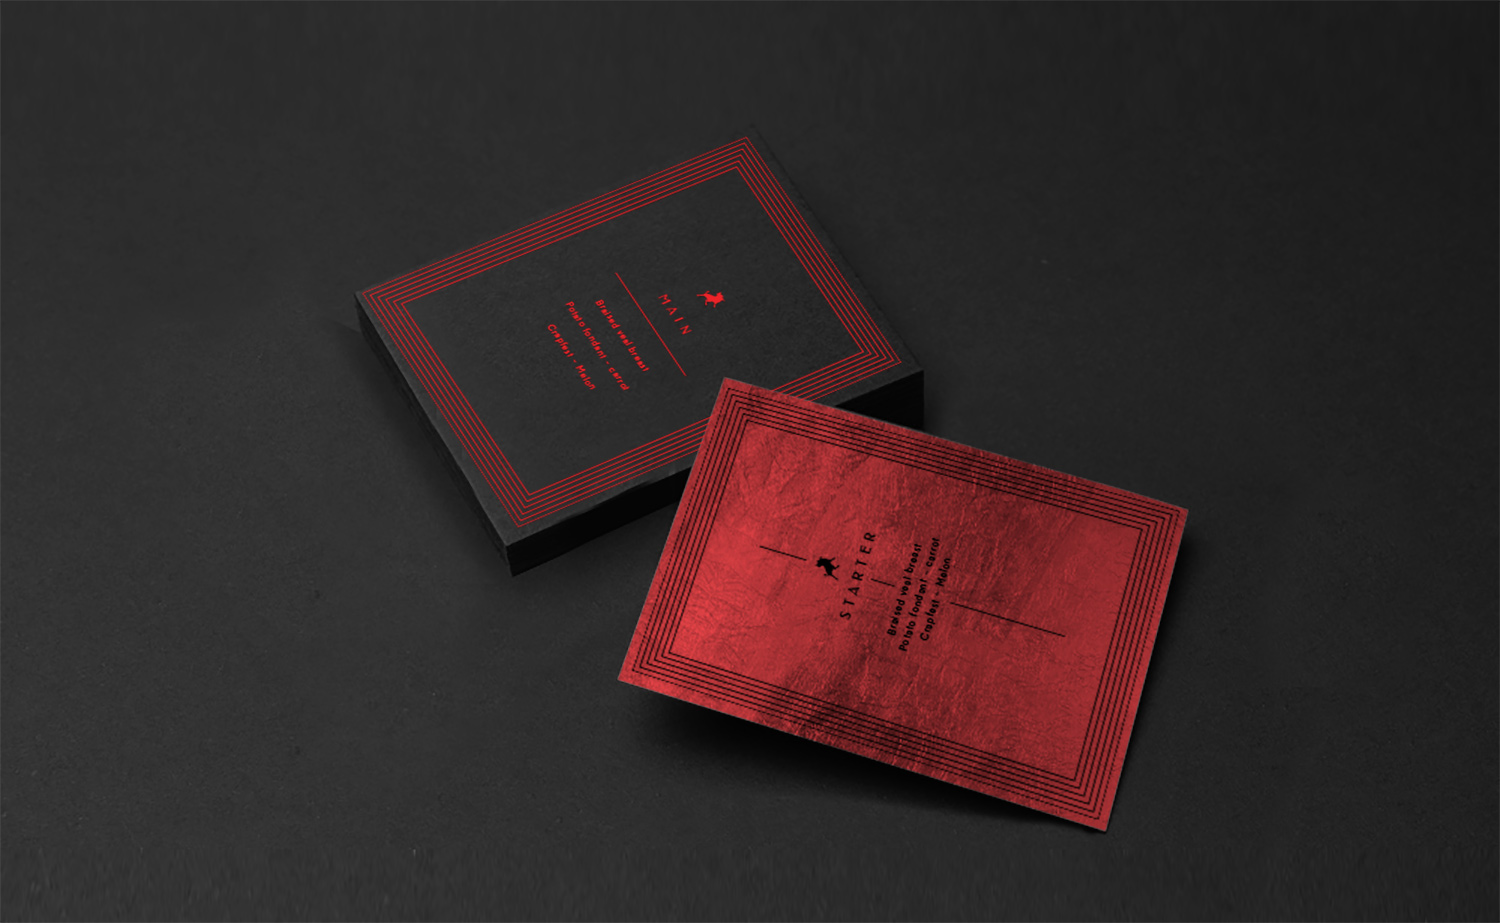 influencers diner for lois jeans; menu stack of cards, red foil on 400 grammes cardboard.